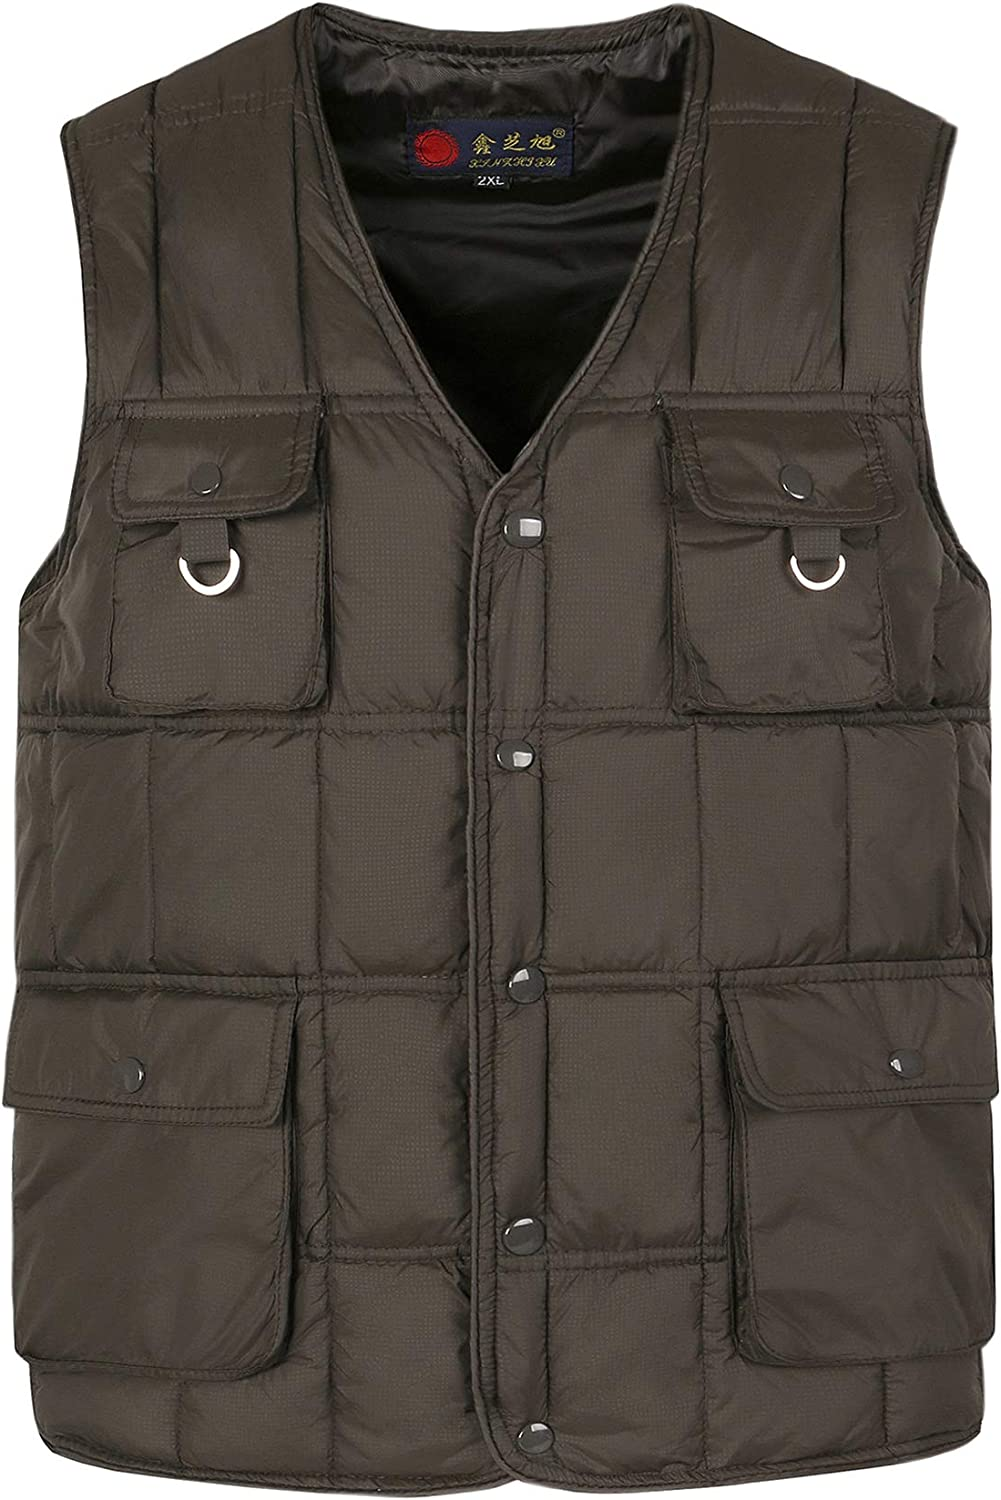 XFentech Middle-Aged Brand Cheap Sale Raleigh Mall Venue Waistcoat - Men's H Jacket Vest for Camping